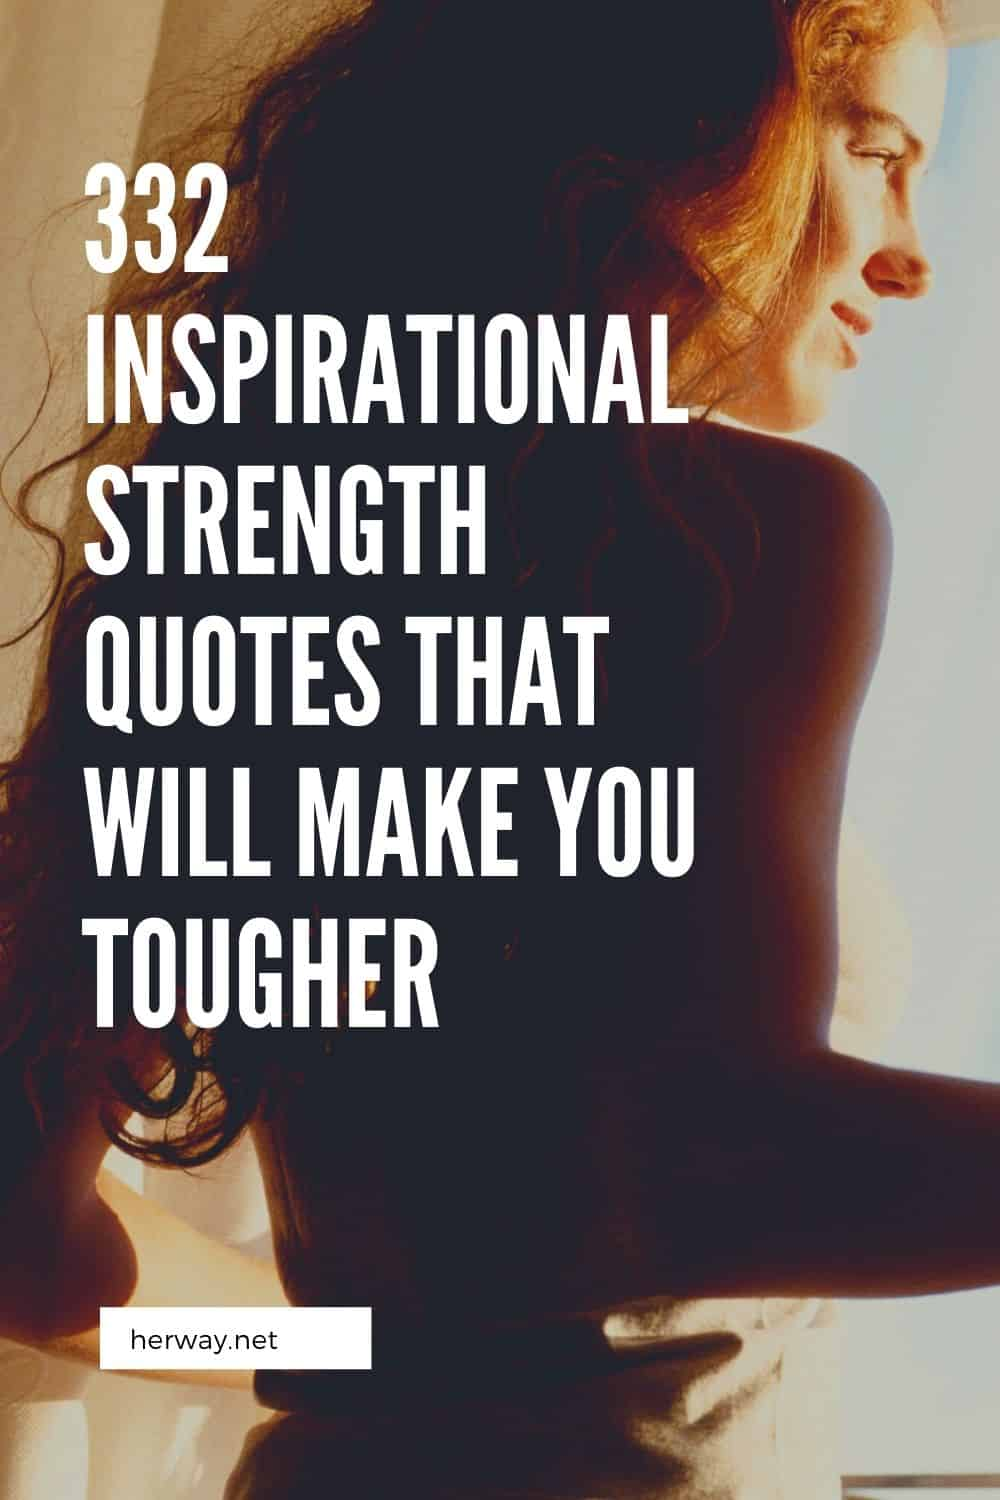 332 Inspirational Strength Quotes That Will Make You Tougher